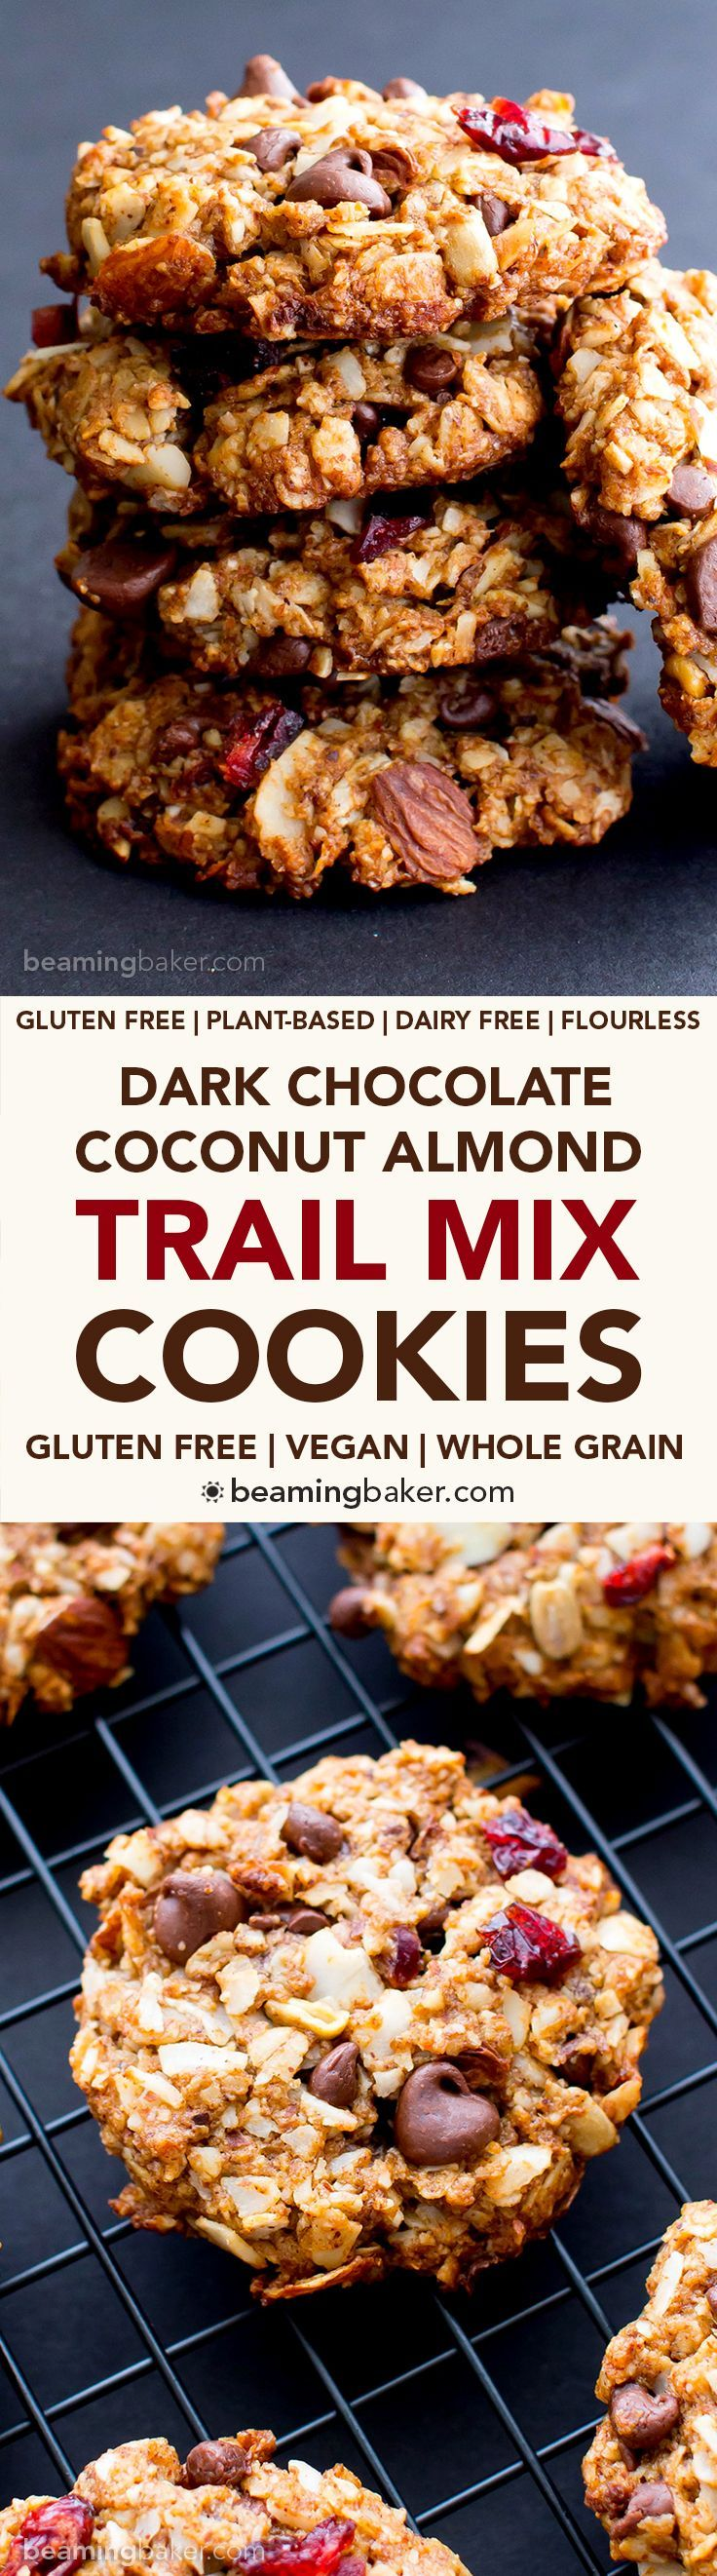 Dark Chocolate Almond Coconut Trail Mix Cookies (V, GF, DF): an easy recipe for deliciously textured chewy trail mix cookies bursting with chocolate, almond and coconut. #Vegan #GlutenFree #DairyFree | http://BeamingBaker.com